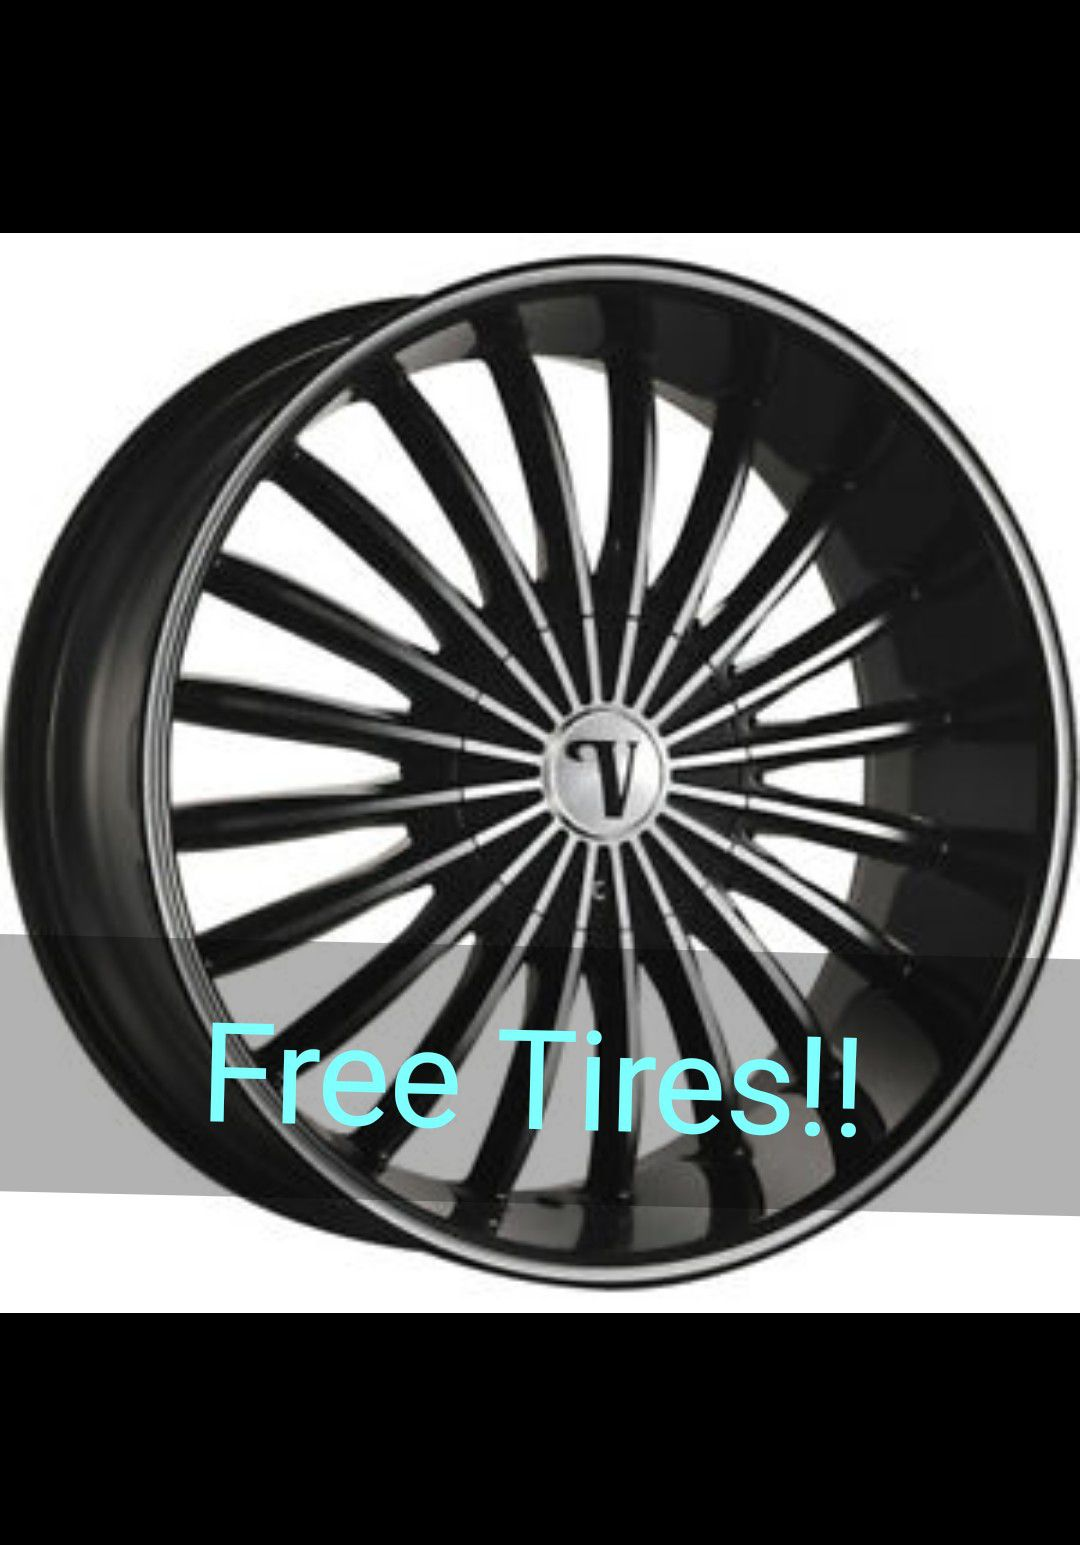 Velocity wheels: no credit check/only $40 downpayment